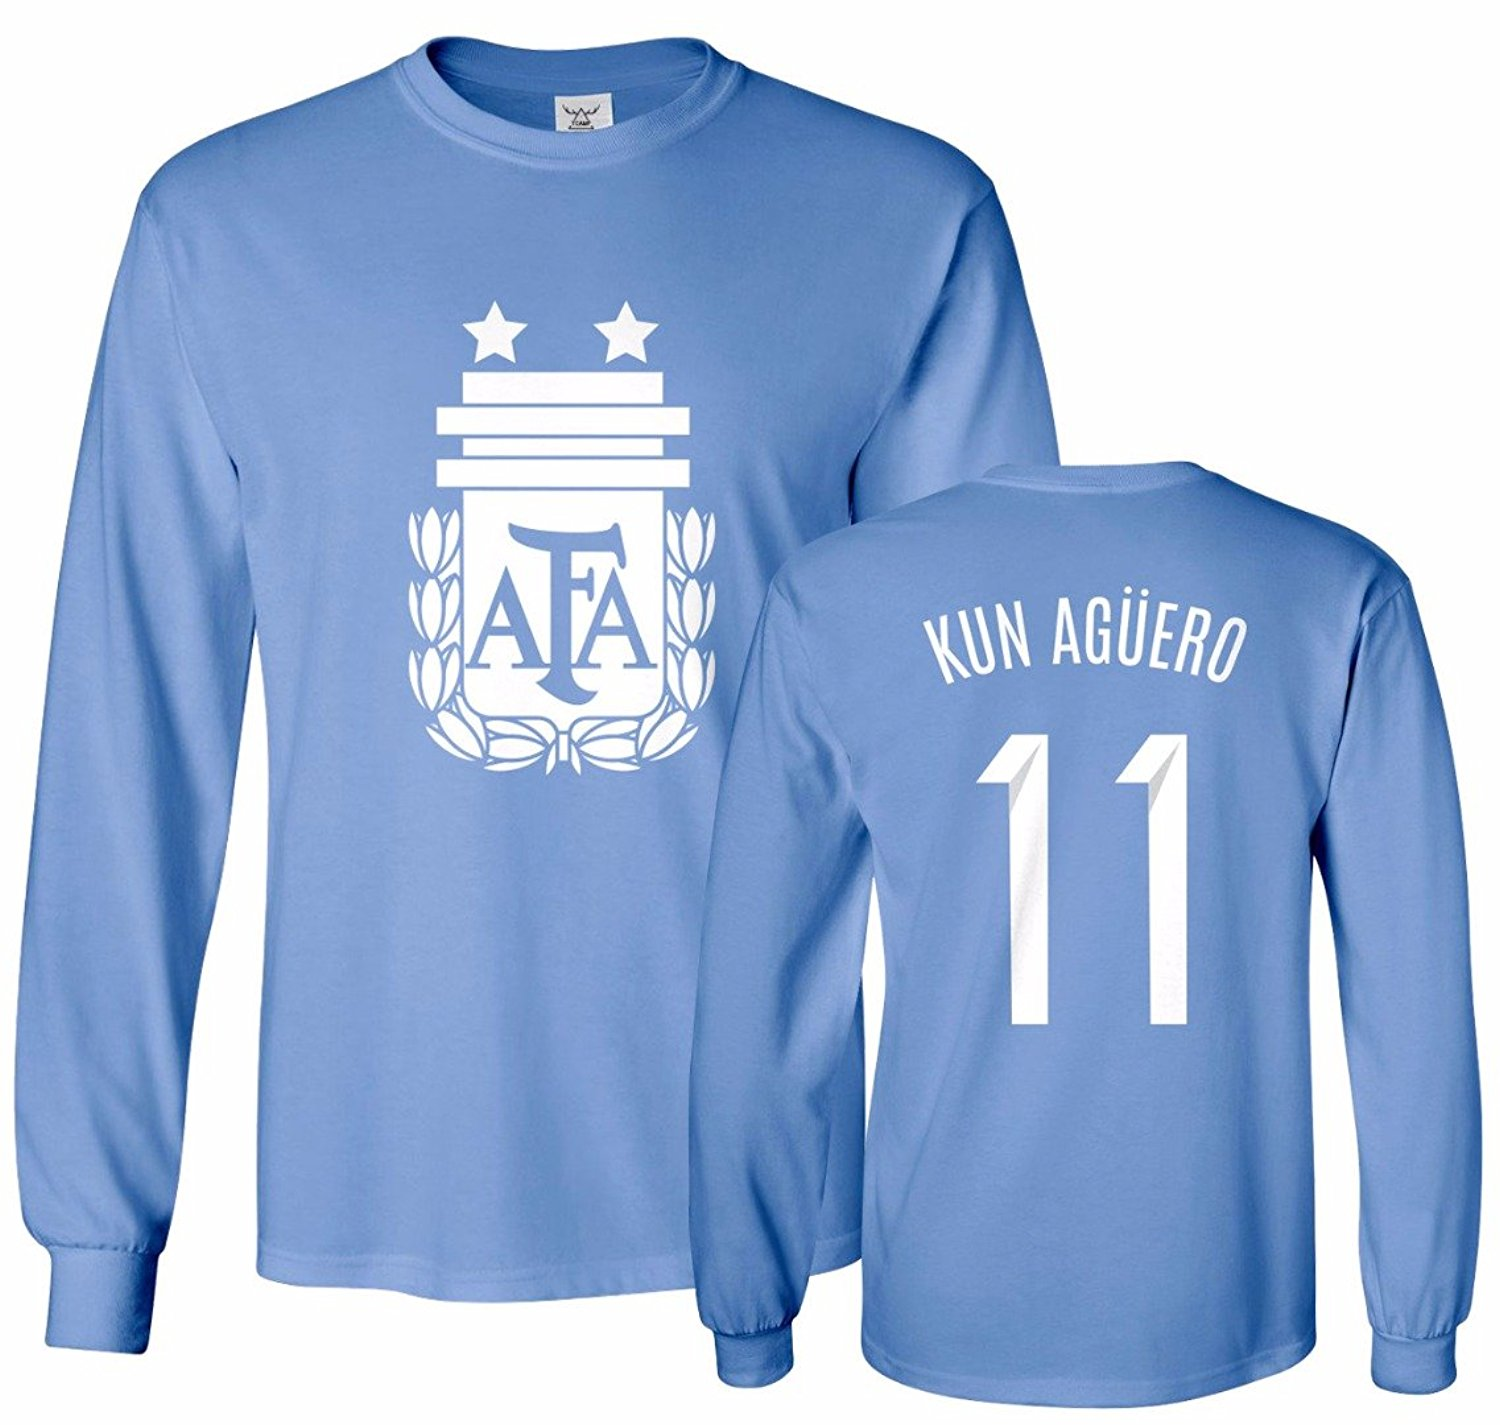 official photos e8497 96045 Cheap Aguero Shirt, find Aguero Shirt deals on line at ...